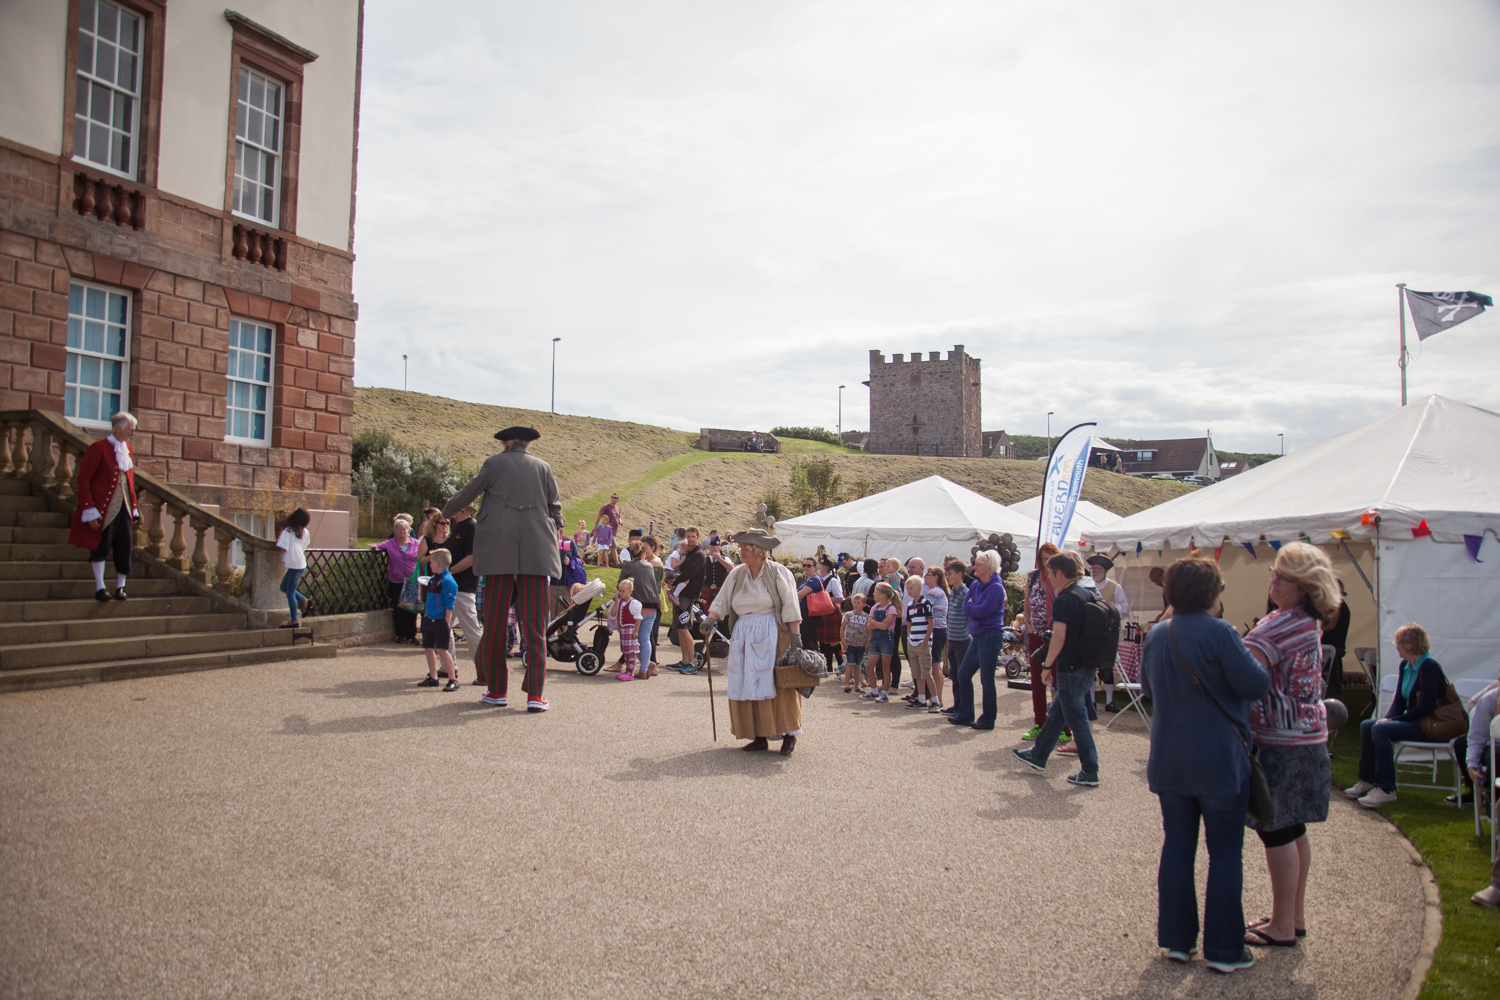 PICTORIAL_BERWICK_eyemouth-gunsgreen-extravaganza-photography-entertainment-party-event-photographer-harbour-gary-dunn-dancers-stilts-performances-speeches-day-out-summer-4539.jpg